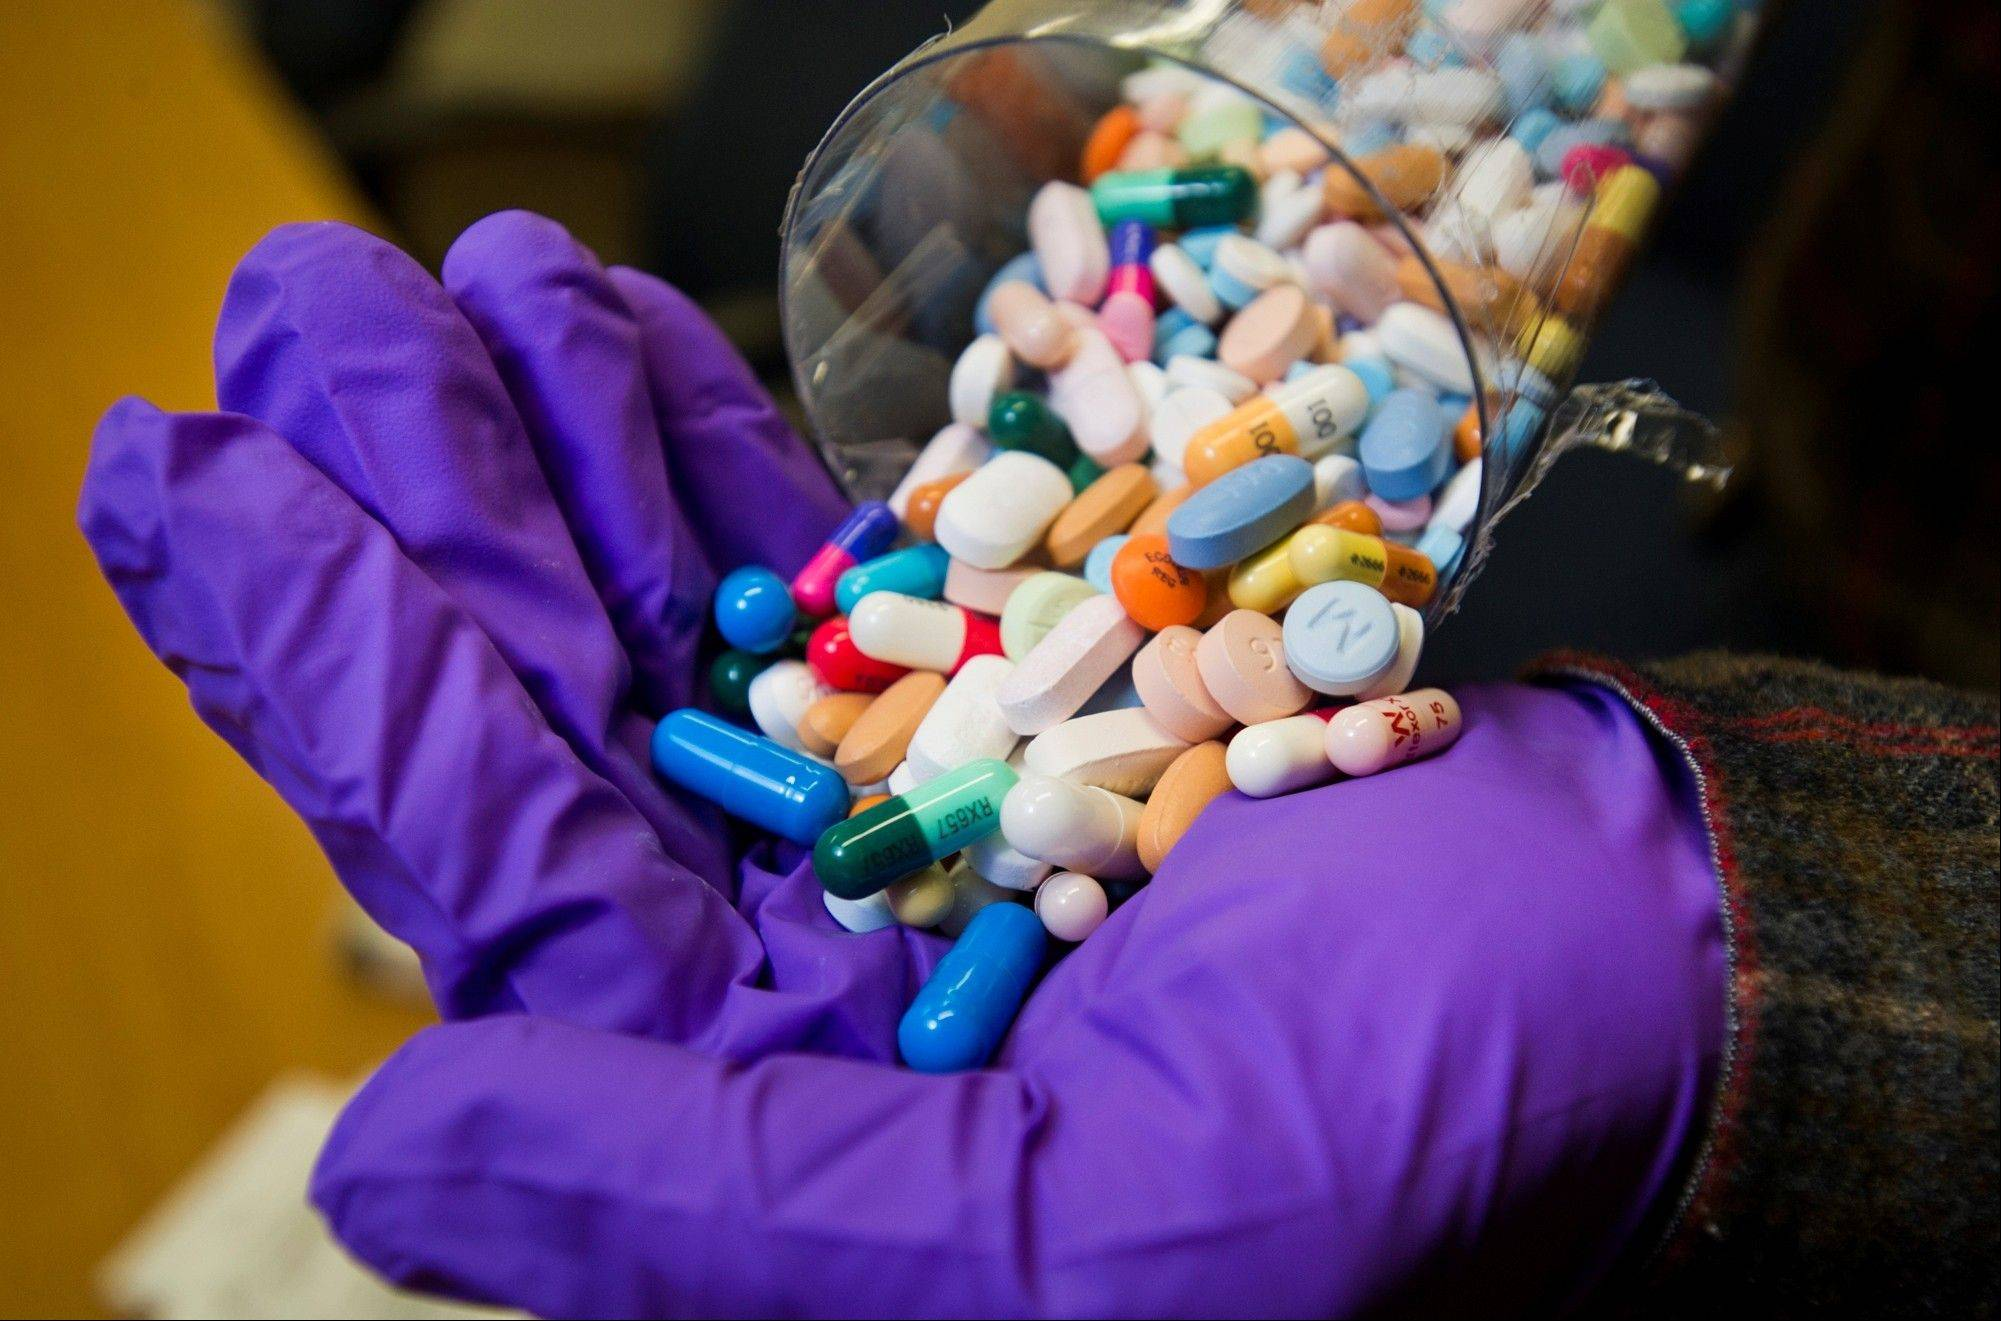 Police Department Detective Chris Couch empties a vial of prescription drugs, mostly painkillers, at the Columbus, Ind., station. Police acknowledge that the fight against drug abuse, especially the illicit use of prescription drugs, might never be fully won, but they insist that educational efforts and greater cooperation taking place among police agencies, doctors, hospitals and other medical professionals can save lives and lead to more arrests of dealers peddling painkillers.